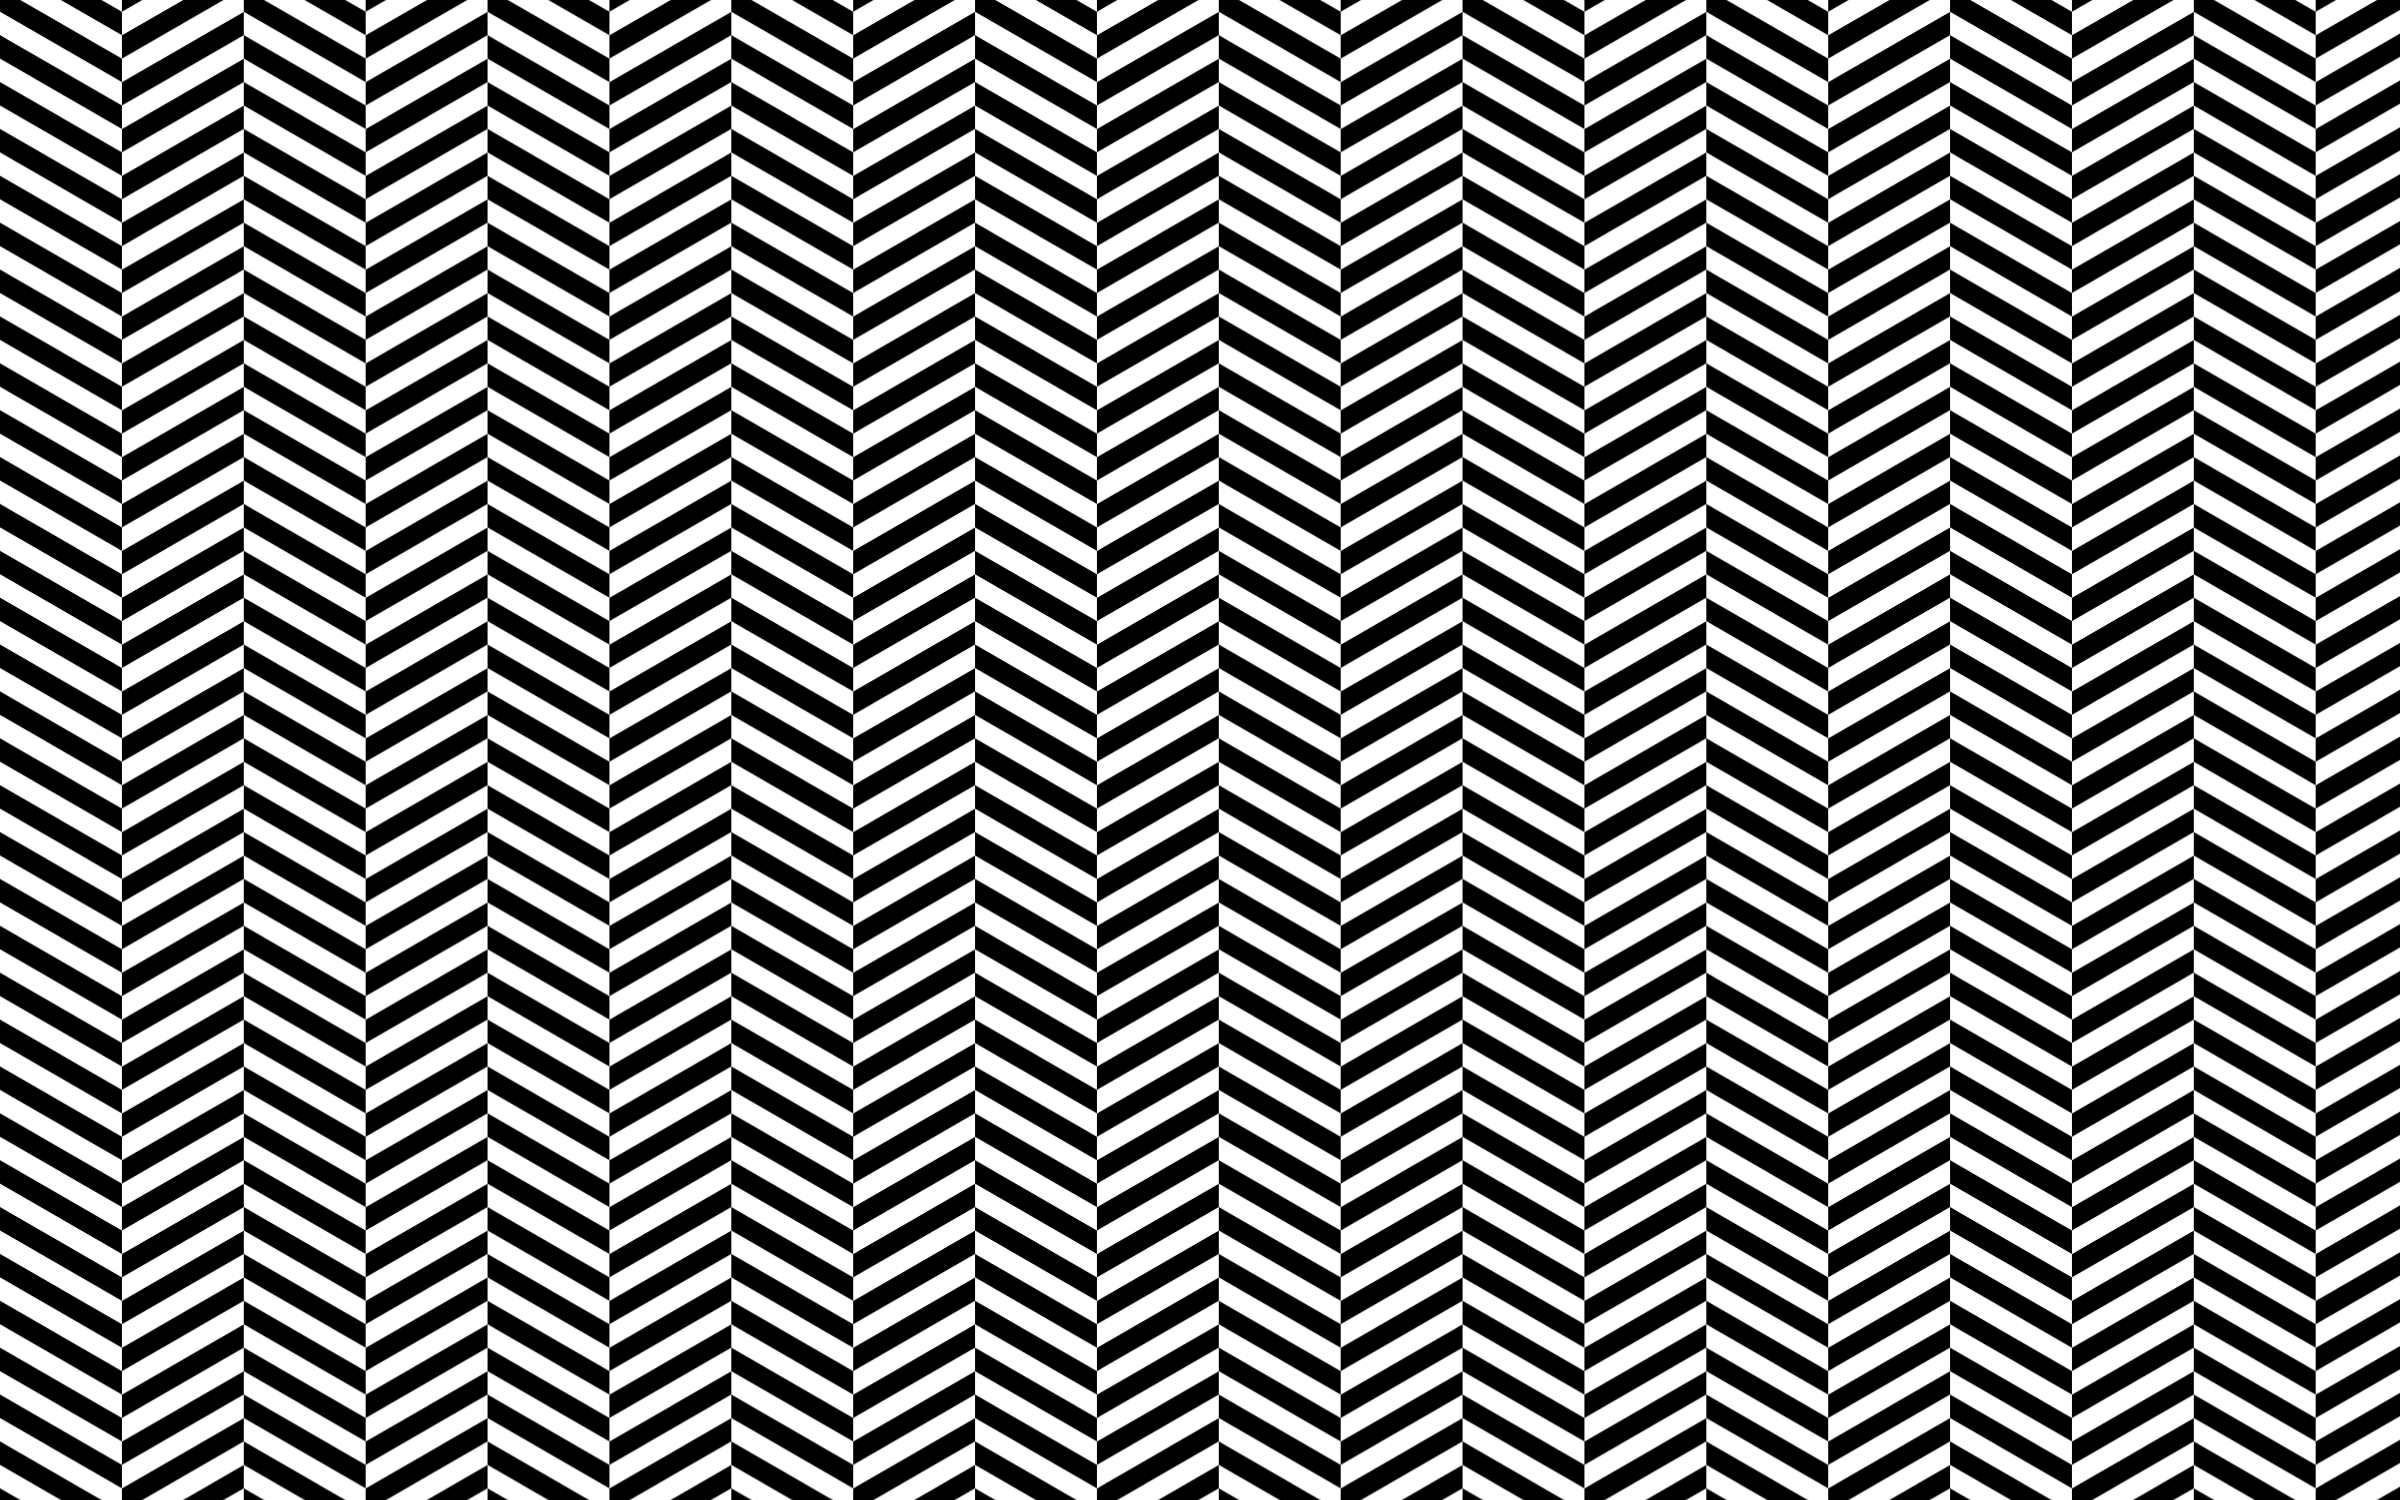 Seamless Herringbone Pattern 2 Icons PNG - Free PNG and Icons Downloads